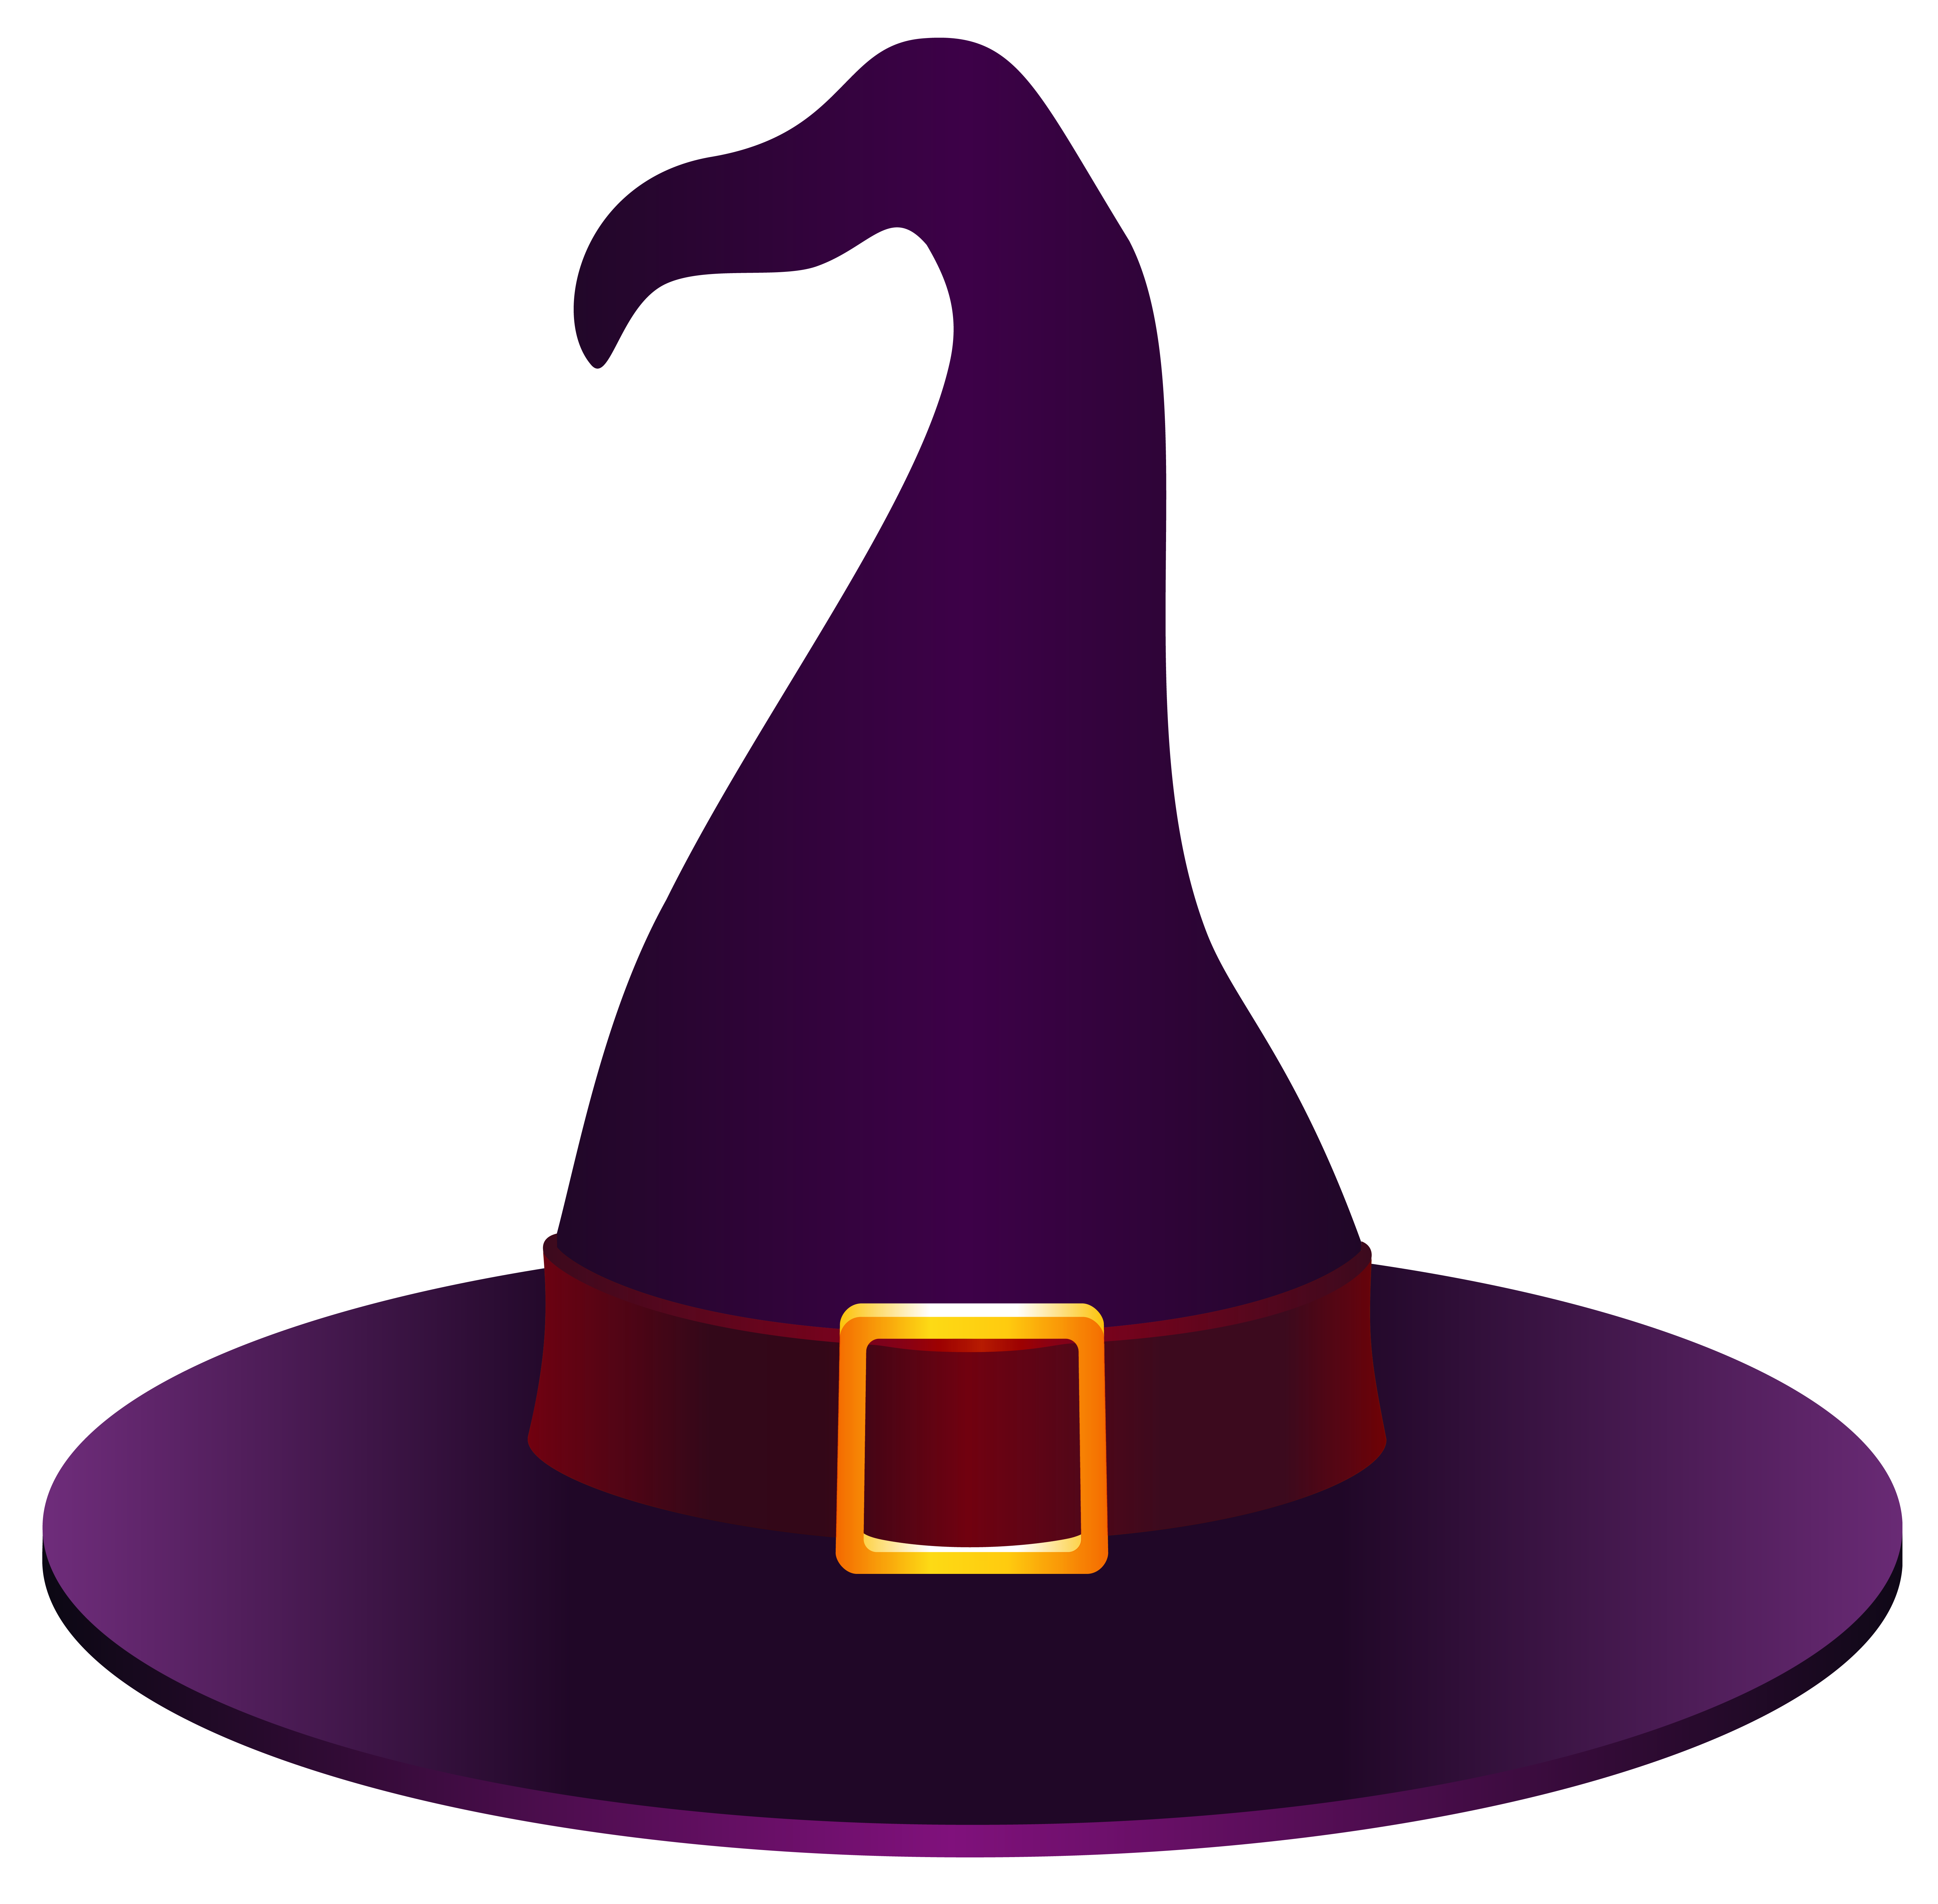 Witch Hat Clipart & Witch Hat Clip Art Images.